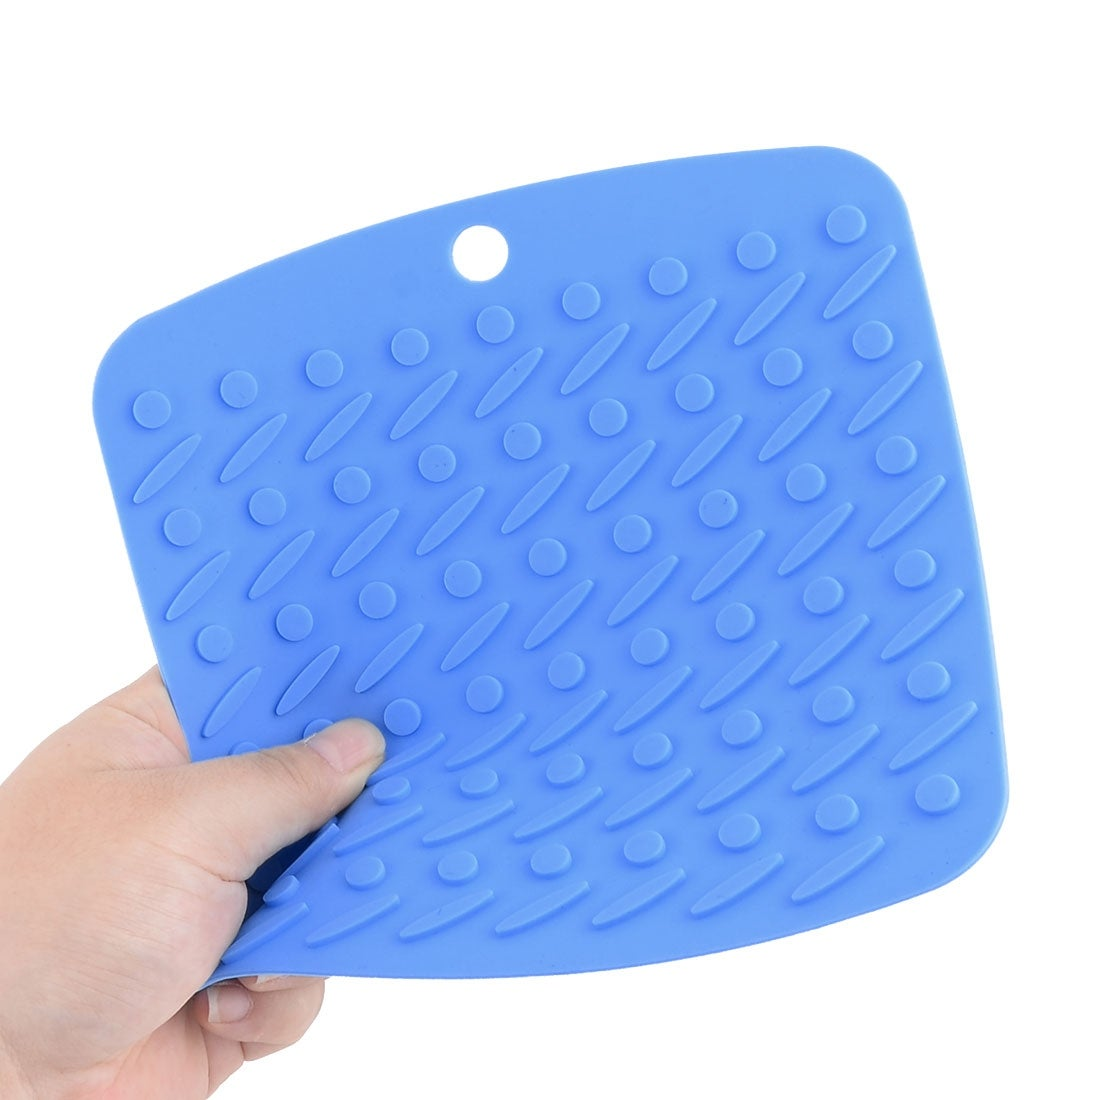 Home Dinnerware Silicone Nonslip Heat Resistant Bowl Cup Pad Mat Placemat  Blue